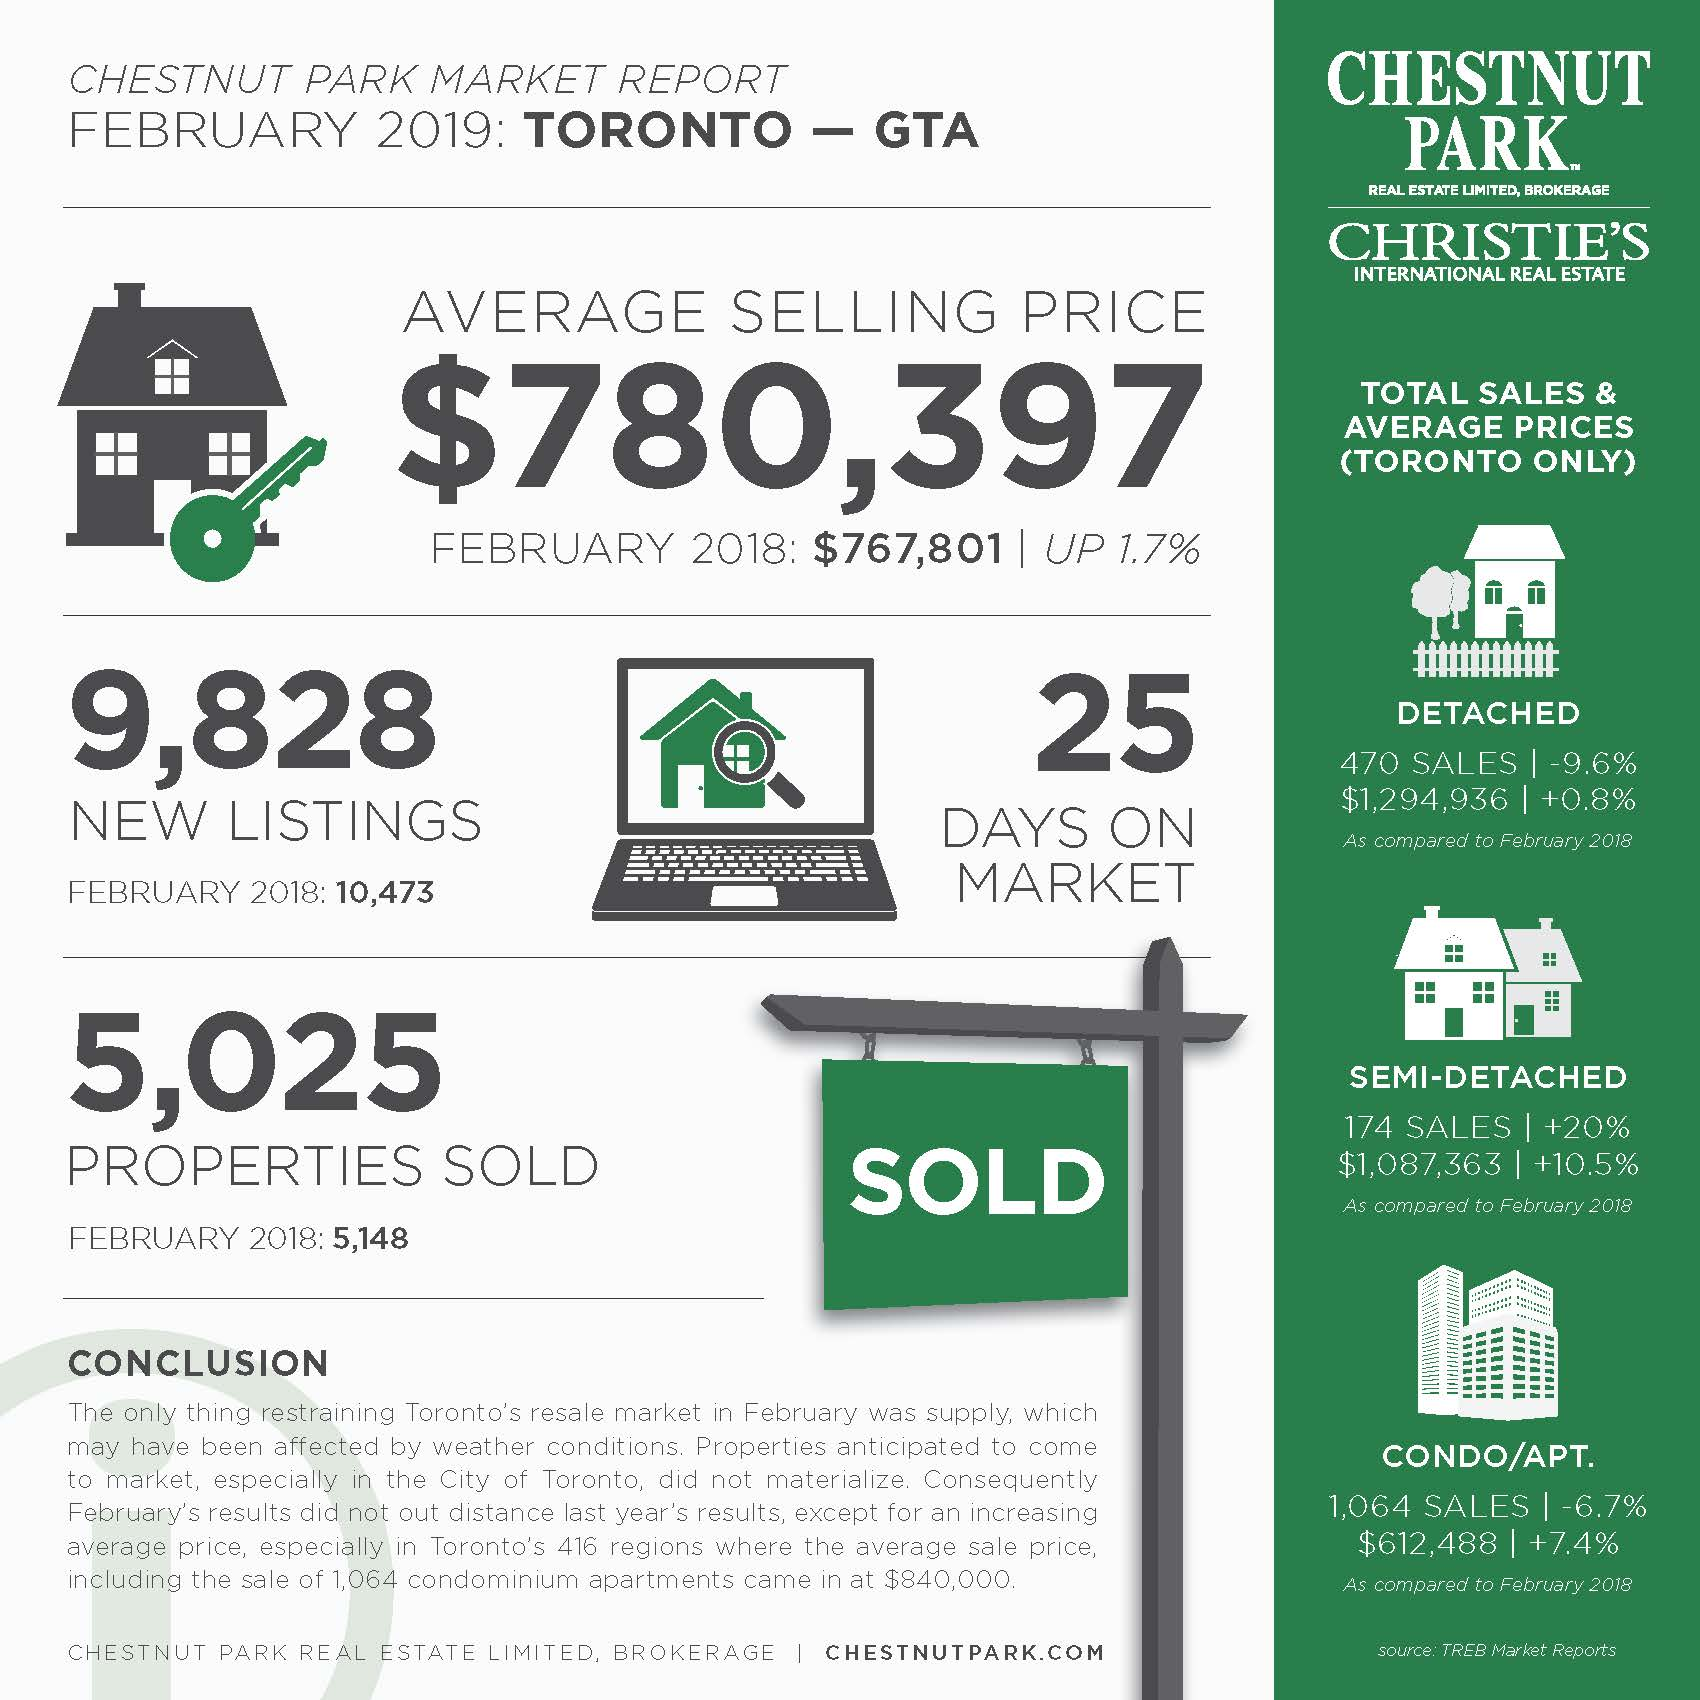 jep Toronto_MarketReport_February2019[39238].jpg